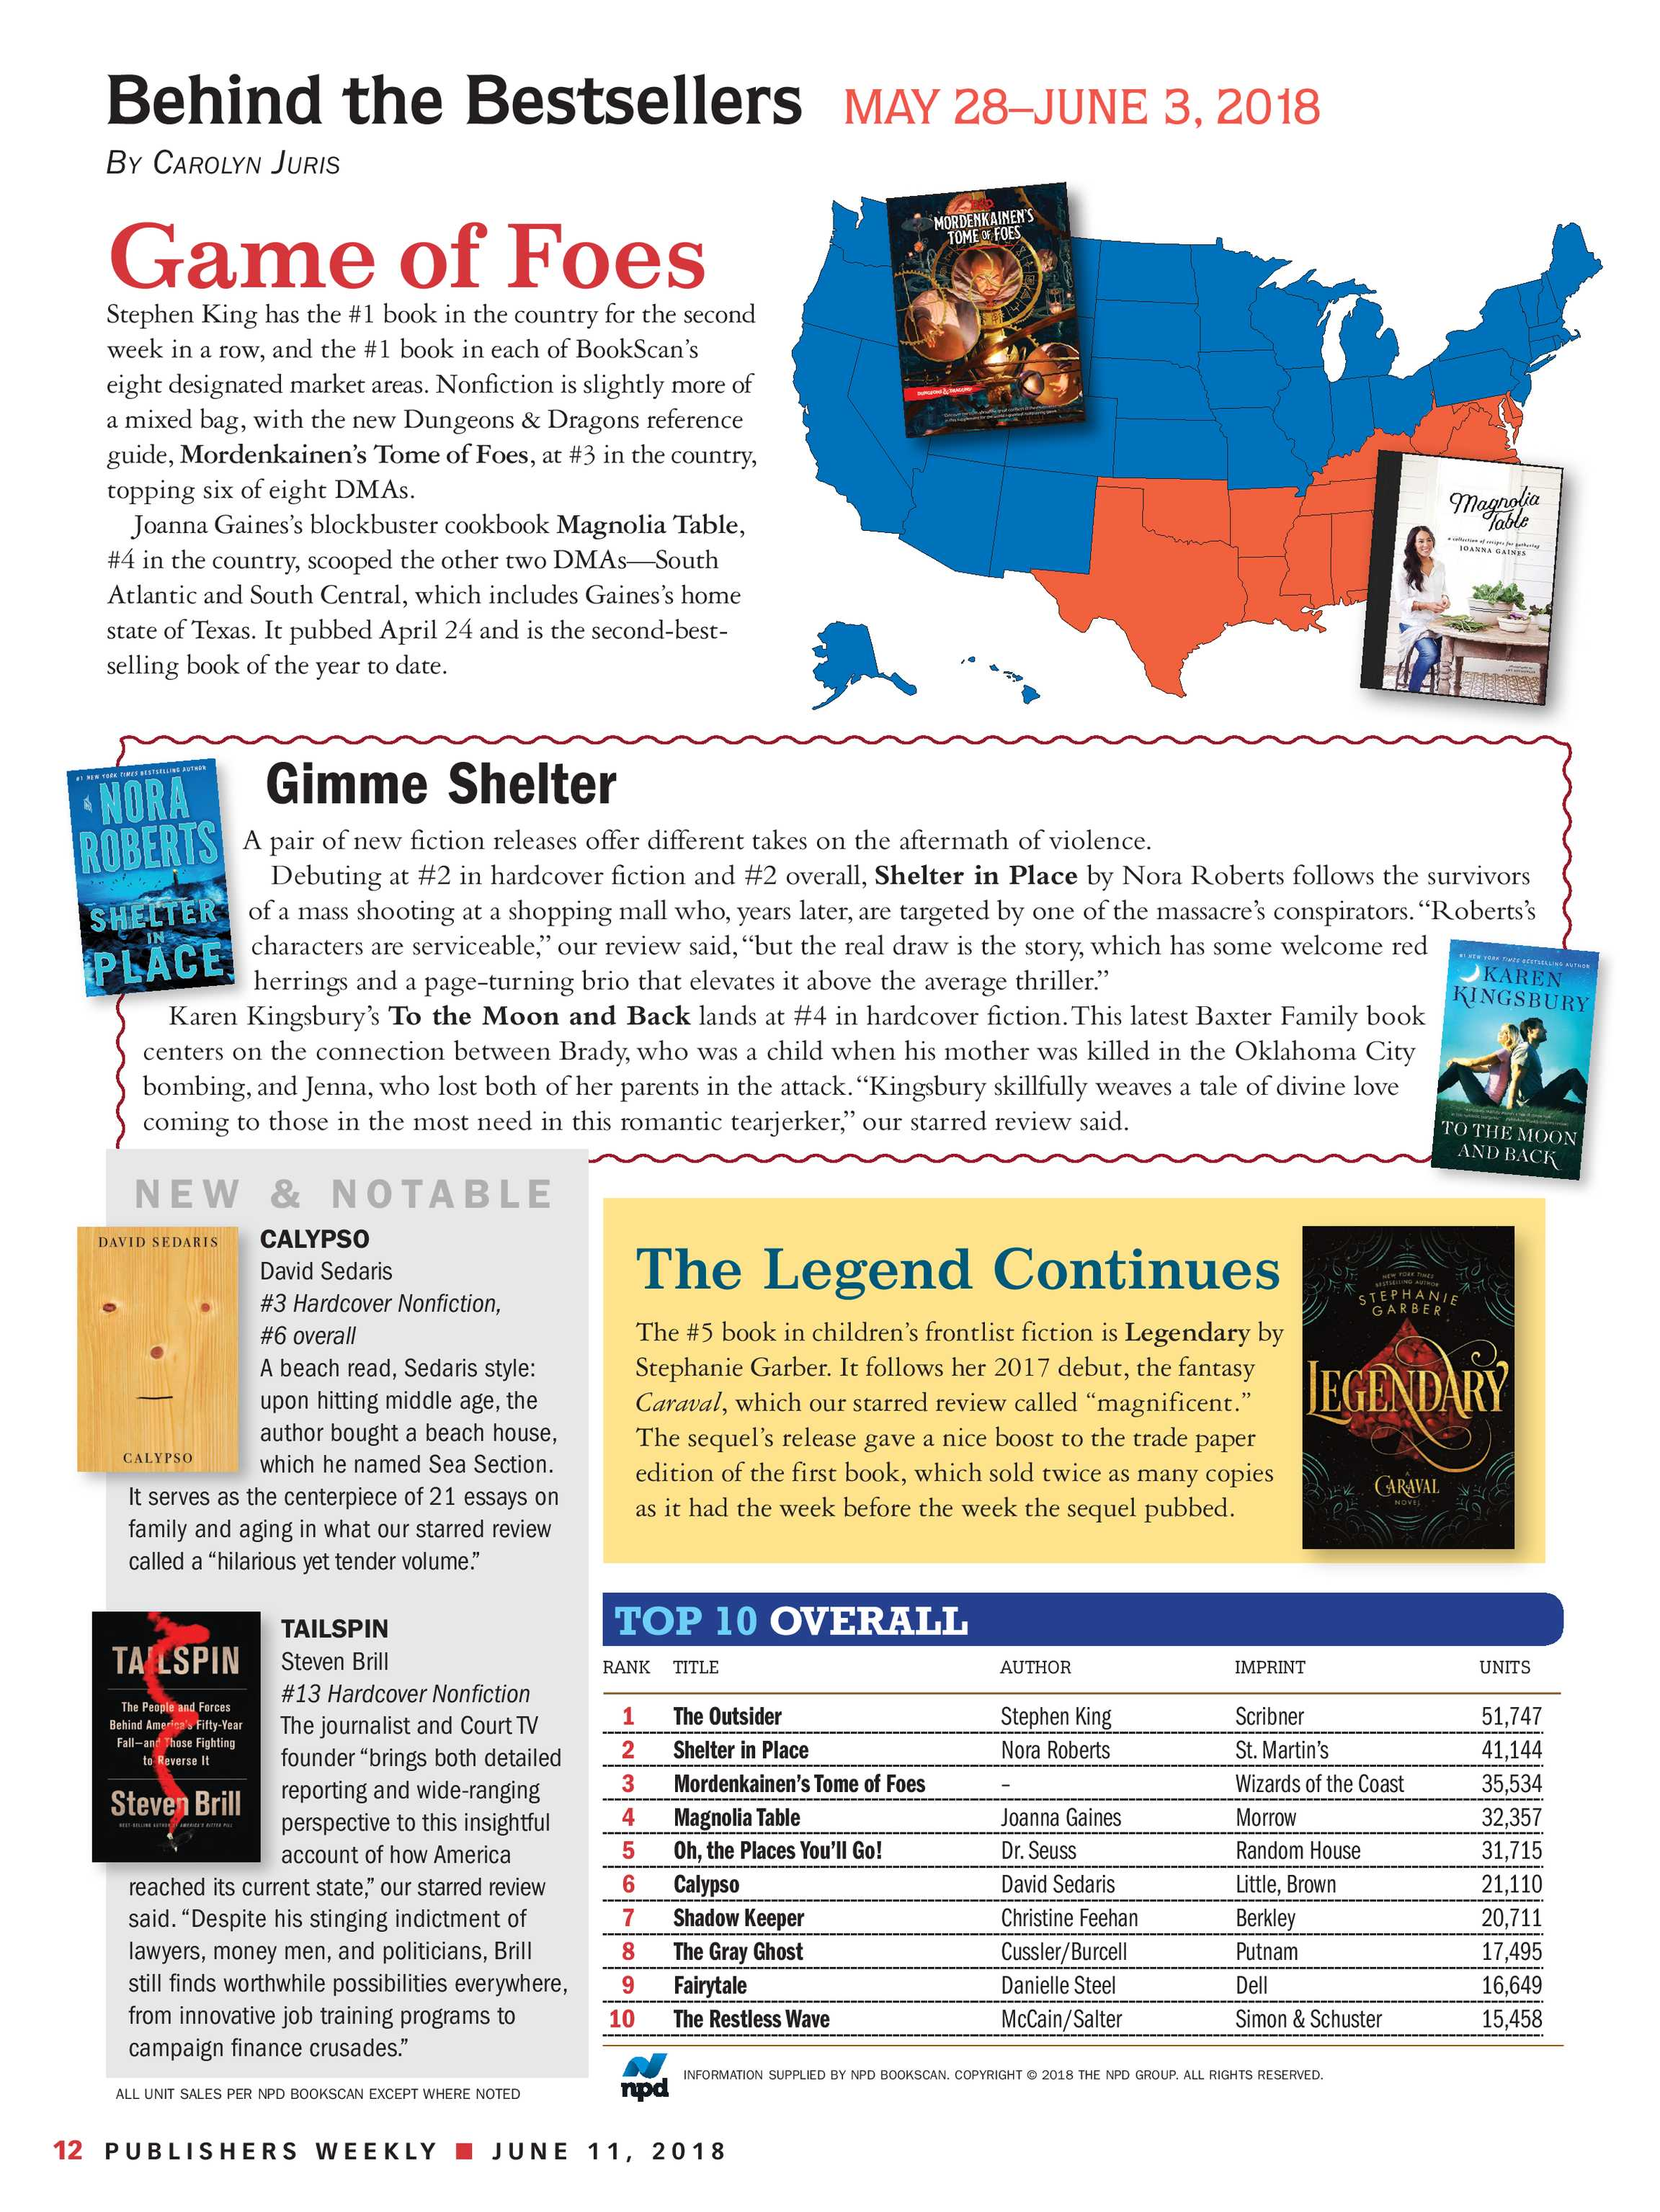 Publishers Weekly - June 11, 2018 - page 6